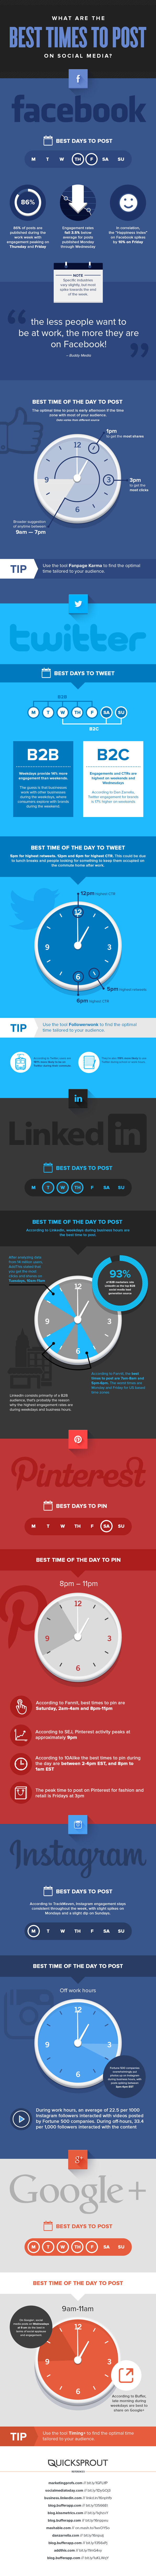 The Best Times to Post on Social Media Infographic image